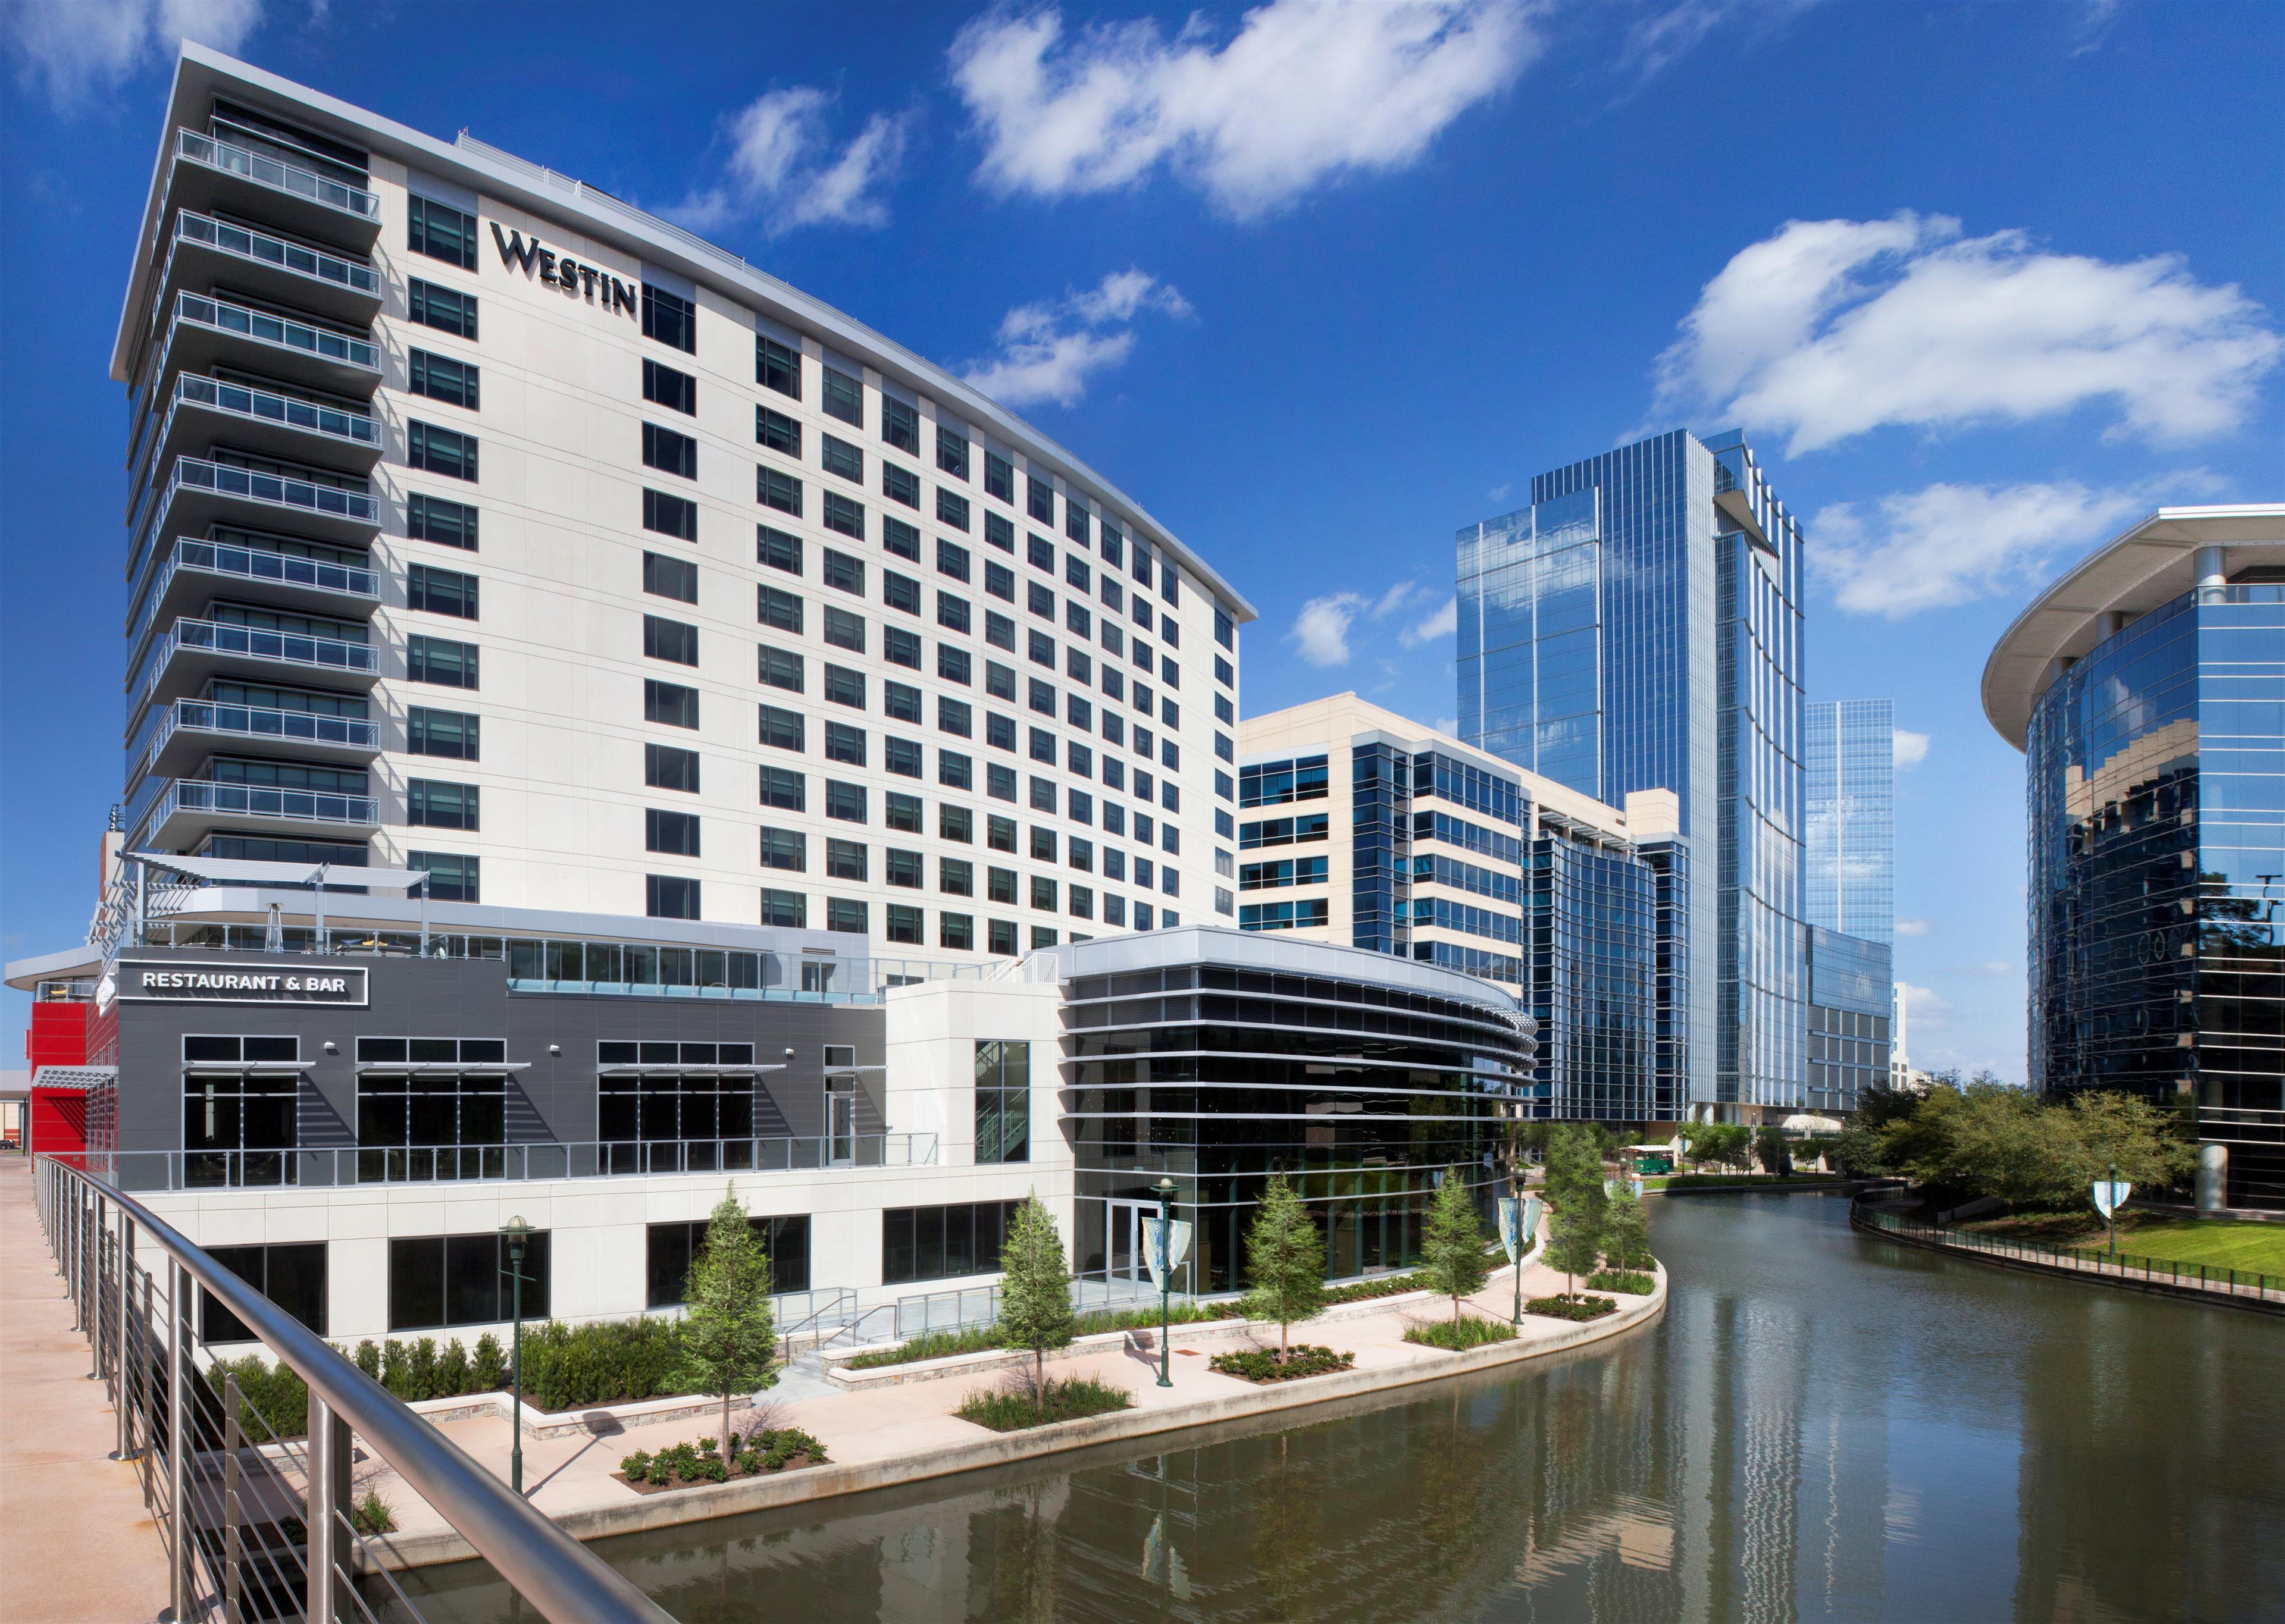 The Westin at The Woodlands image 0